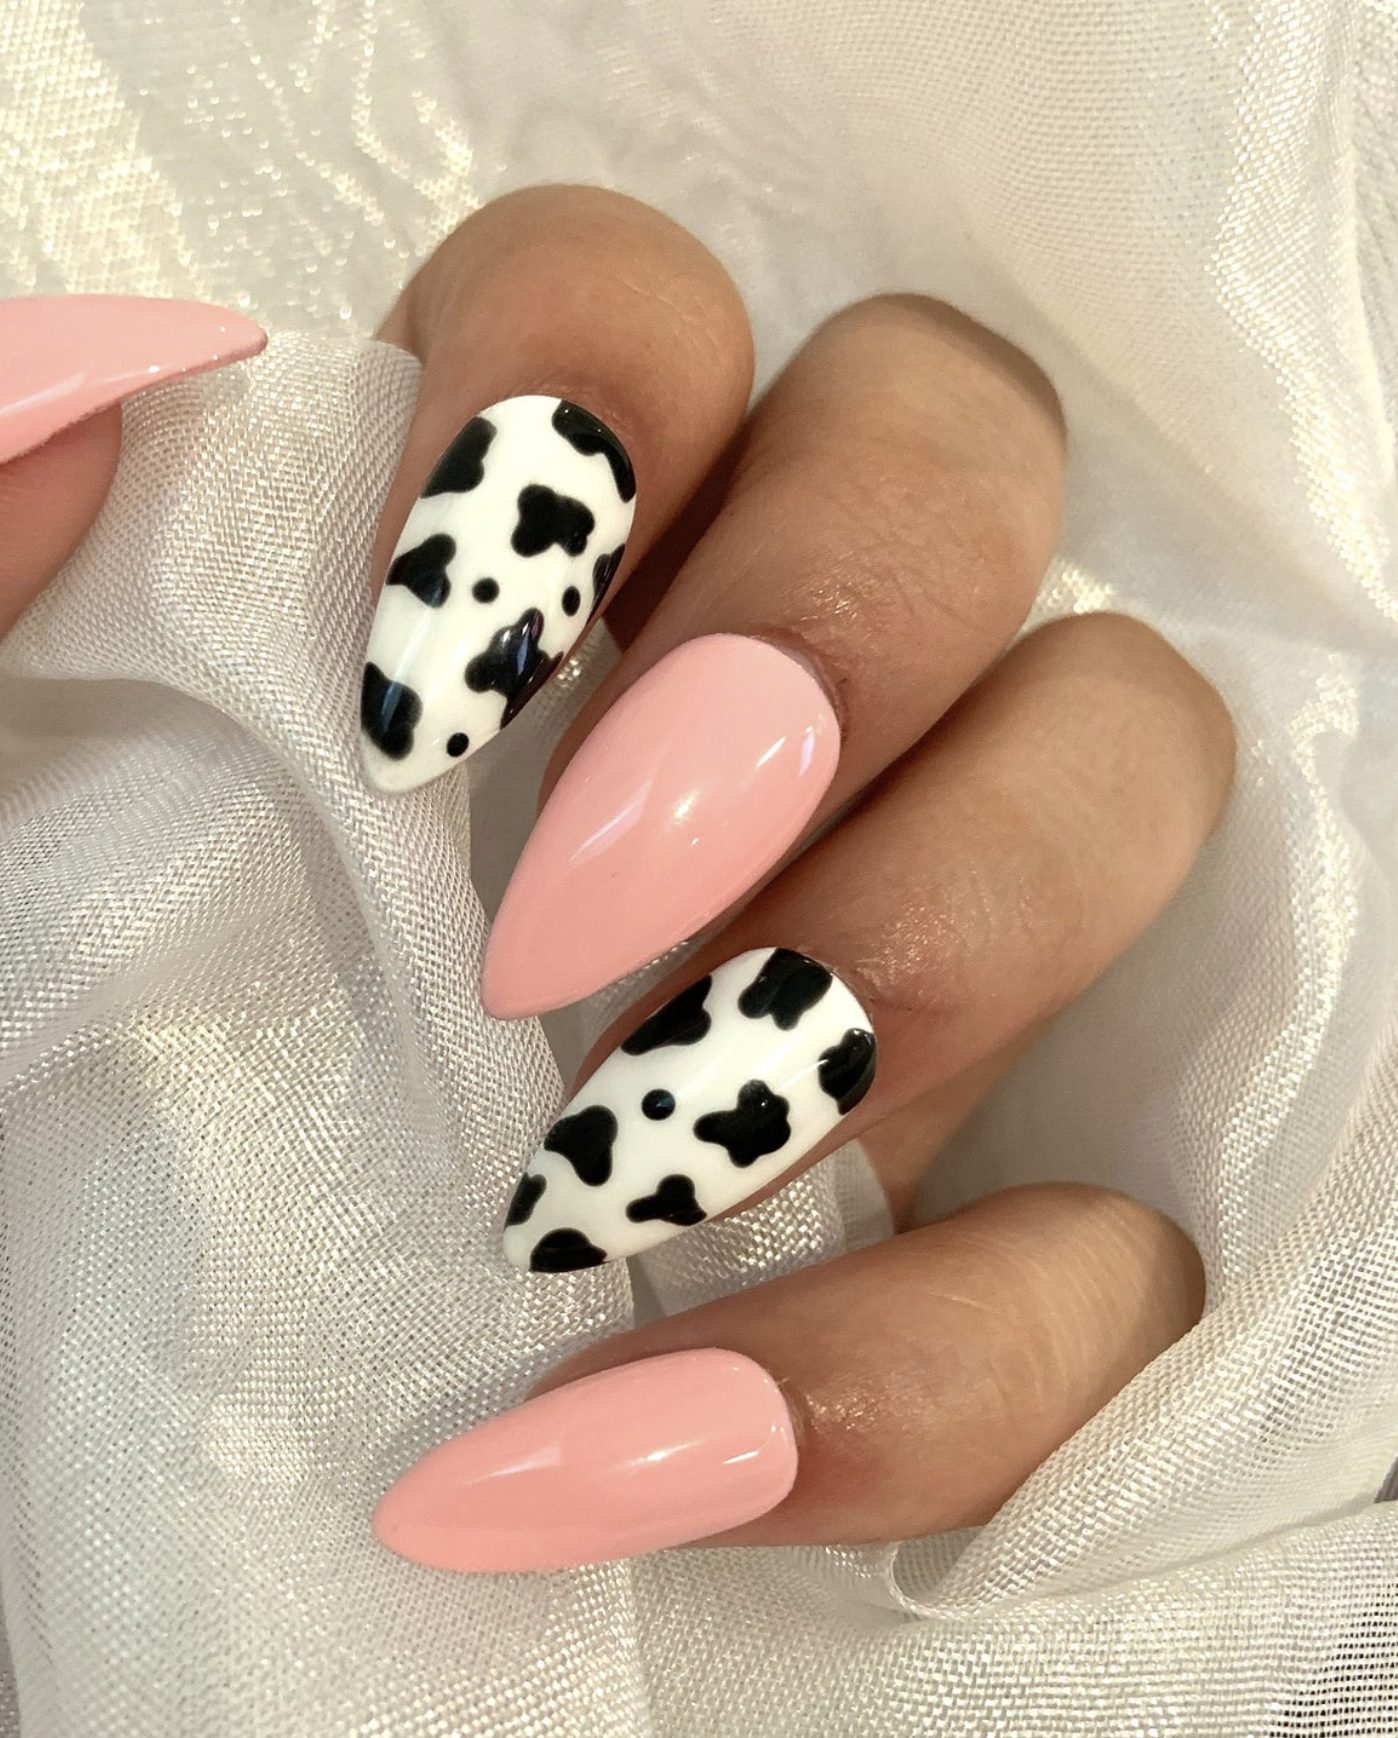 Pink and cow press on the nails